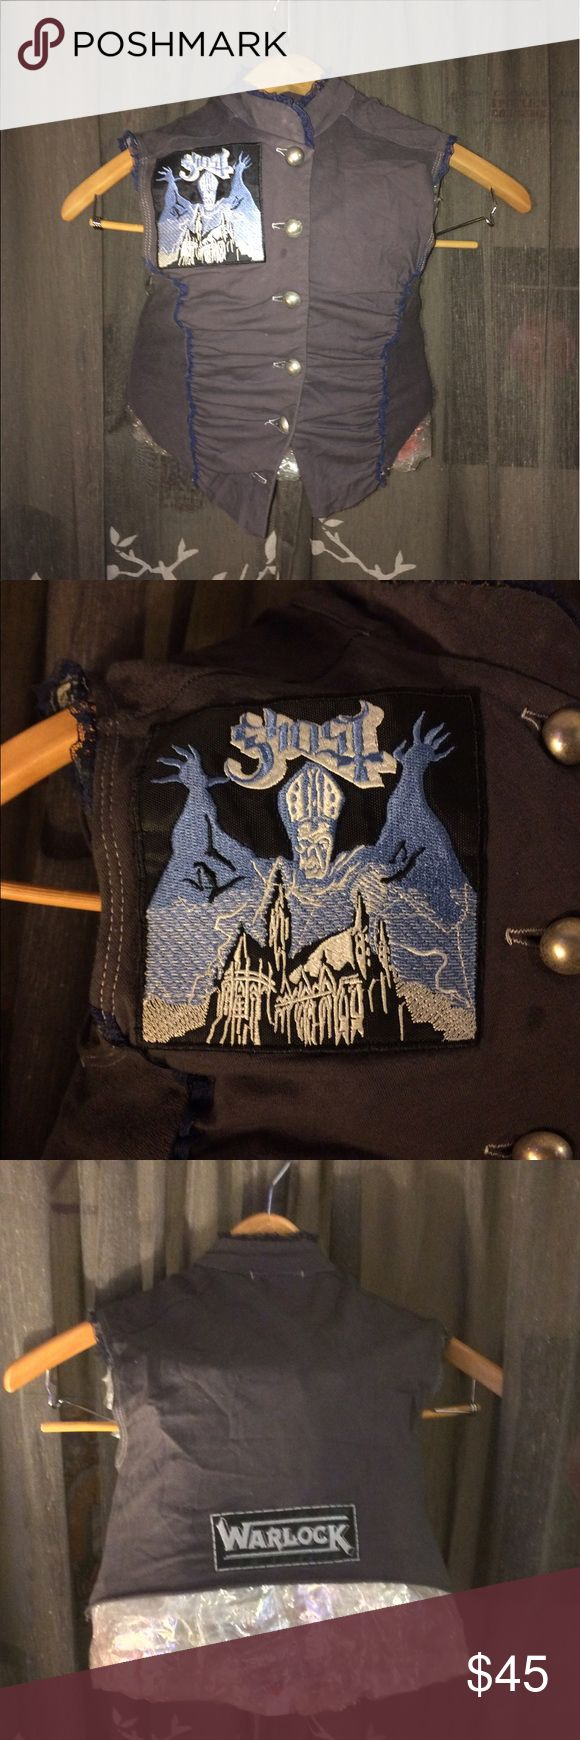 DIY rock n roll metal vest This is a size xs/small modified vest. It's been dyed, cropped, & has two hand sewn patches added on. The bands are Ghost & Warlock. 100% original - no other like it!                    Tags: metal, pink, diy, vest, festival, rock, gray, black, band, music Jackets & Coats Vests